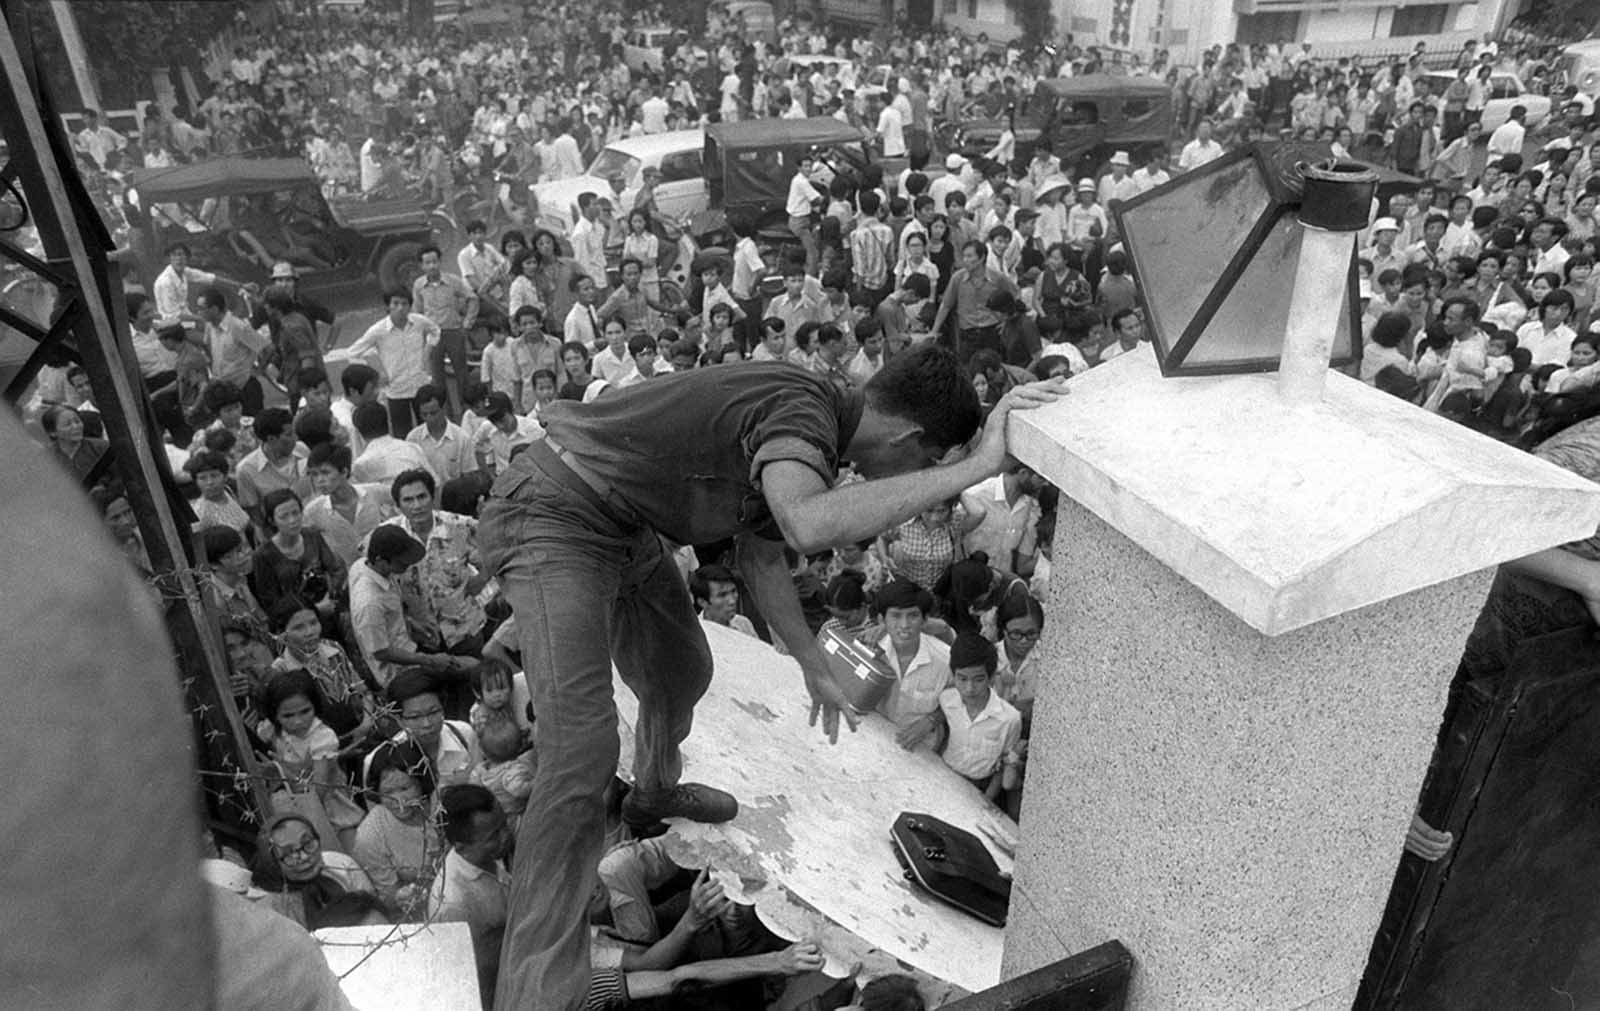 The Fall of Saigon. Fleeing advancing North Vietnamese forces, mobs of South Vietnamese civilians scale the 14-foot wall of the U.S. embassy in Saigon, April 29, 1975, trying to reach evacuation helicopters as the last Americans departed from Vietnam.